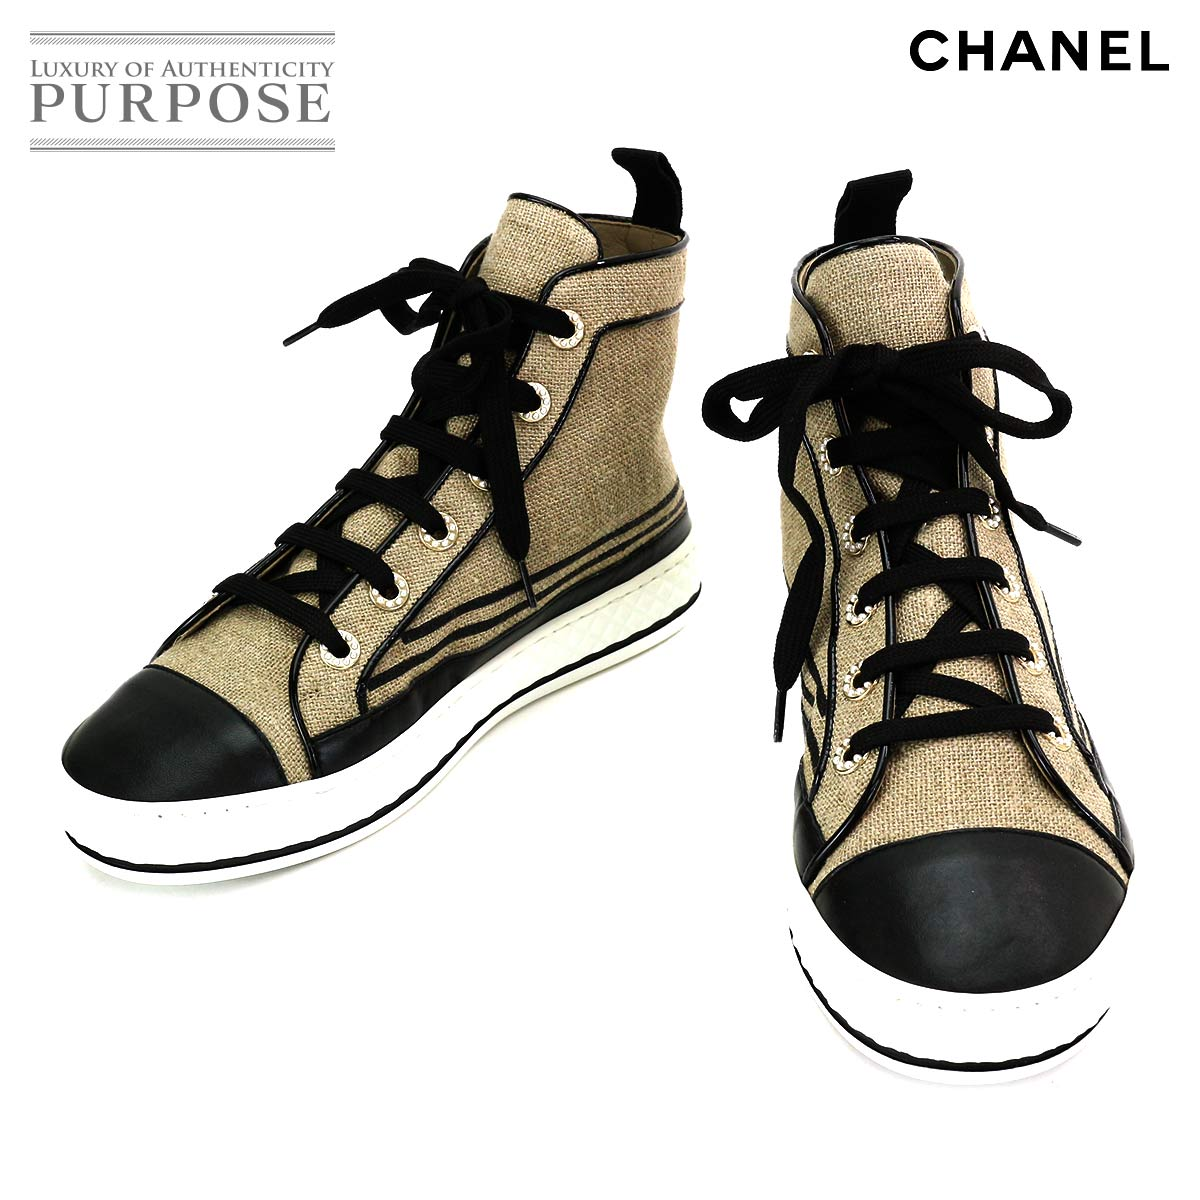 CHANEL sneakers womens CHANEL 36 22.5 23.0 G3422...